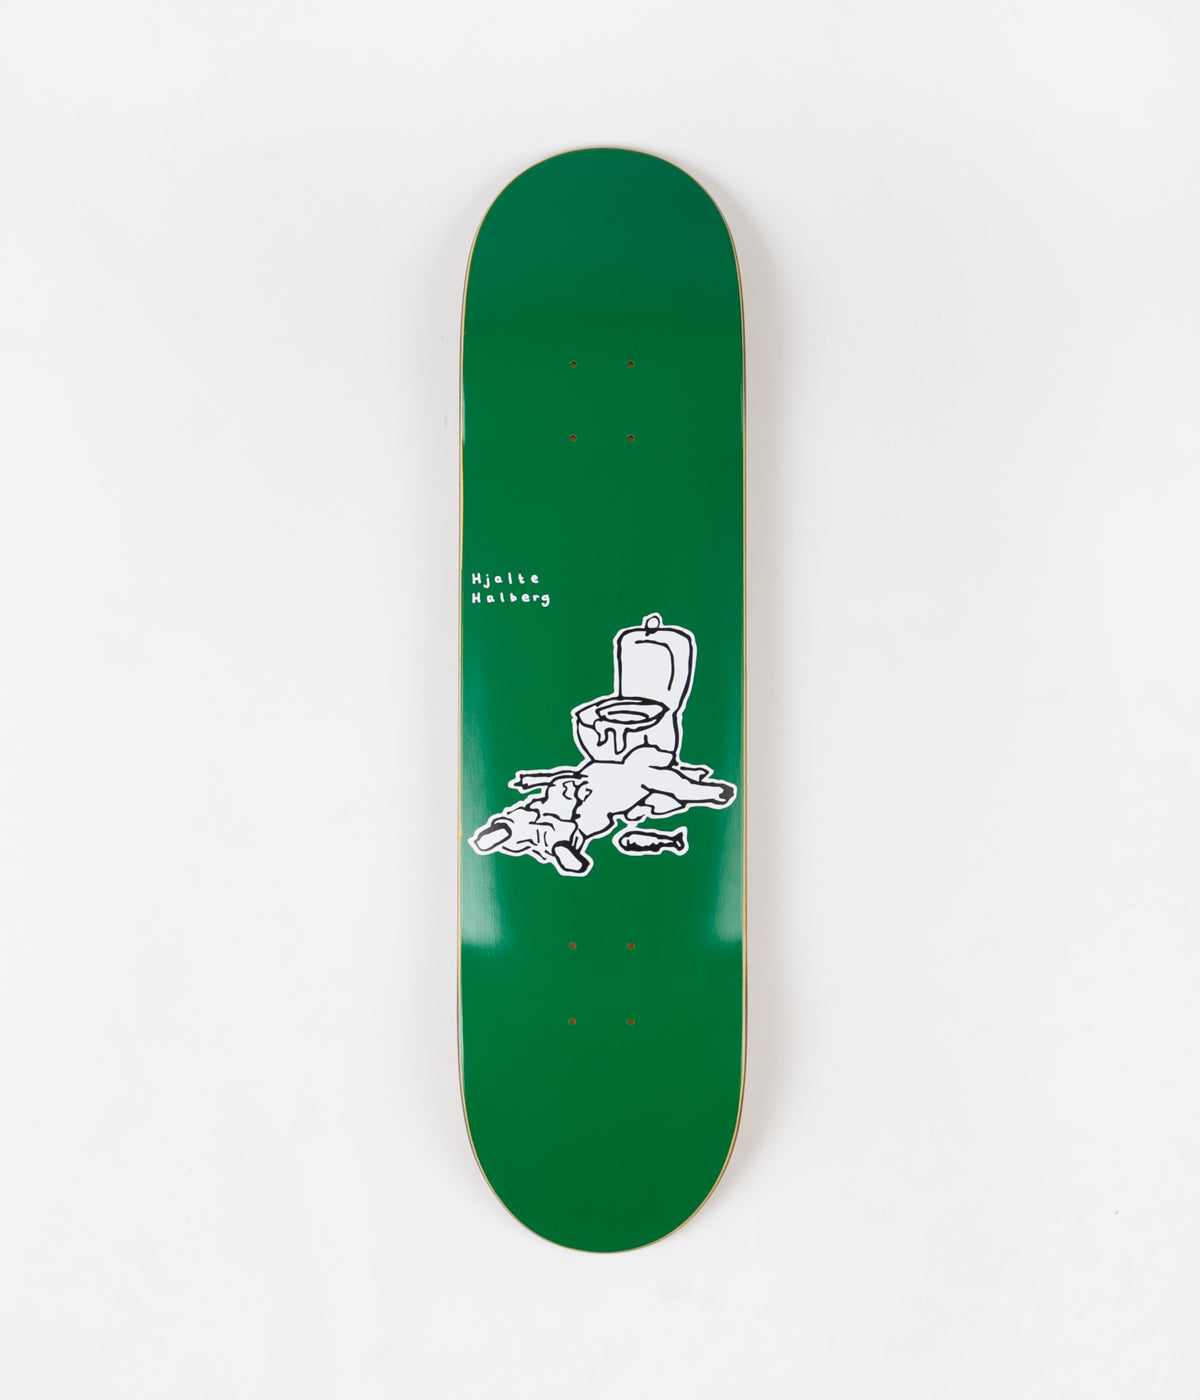 Polar Hjalte Halberg After Work Deck - Green - 8.125""